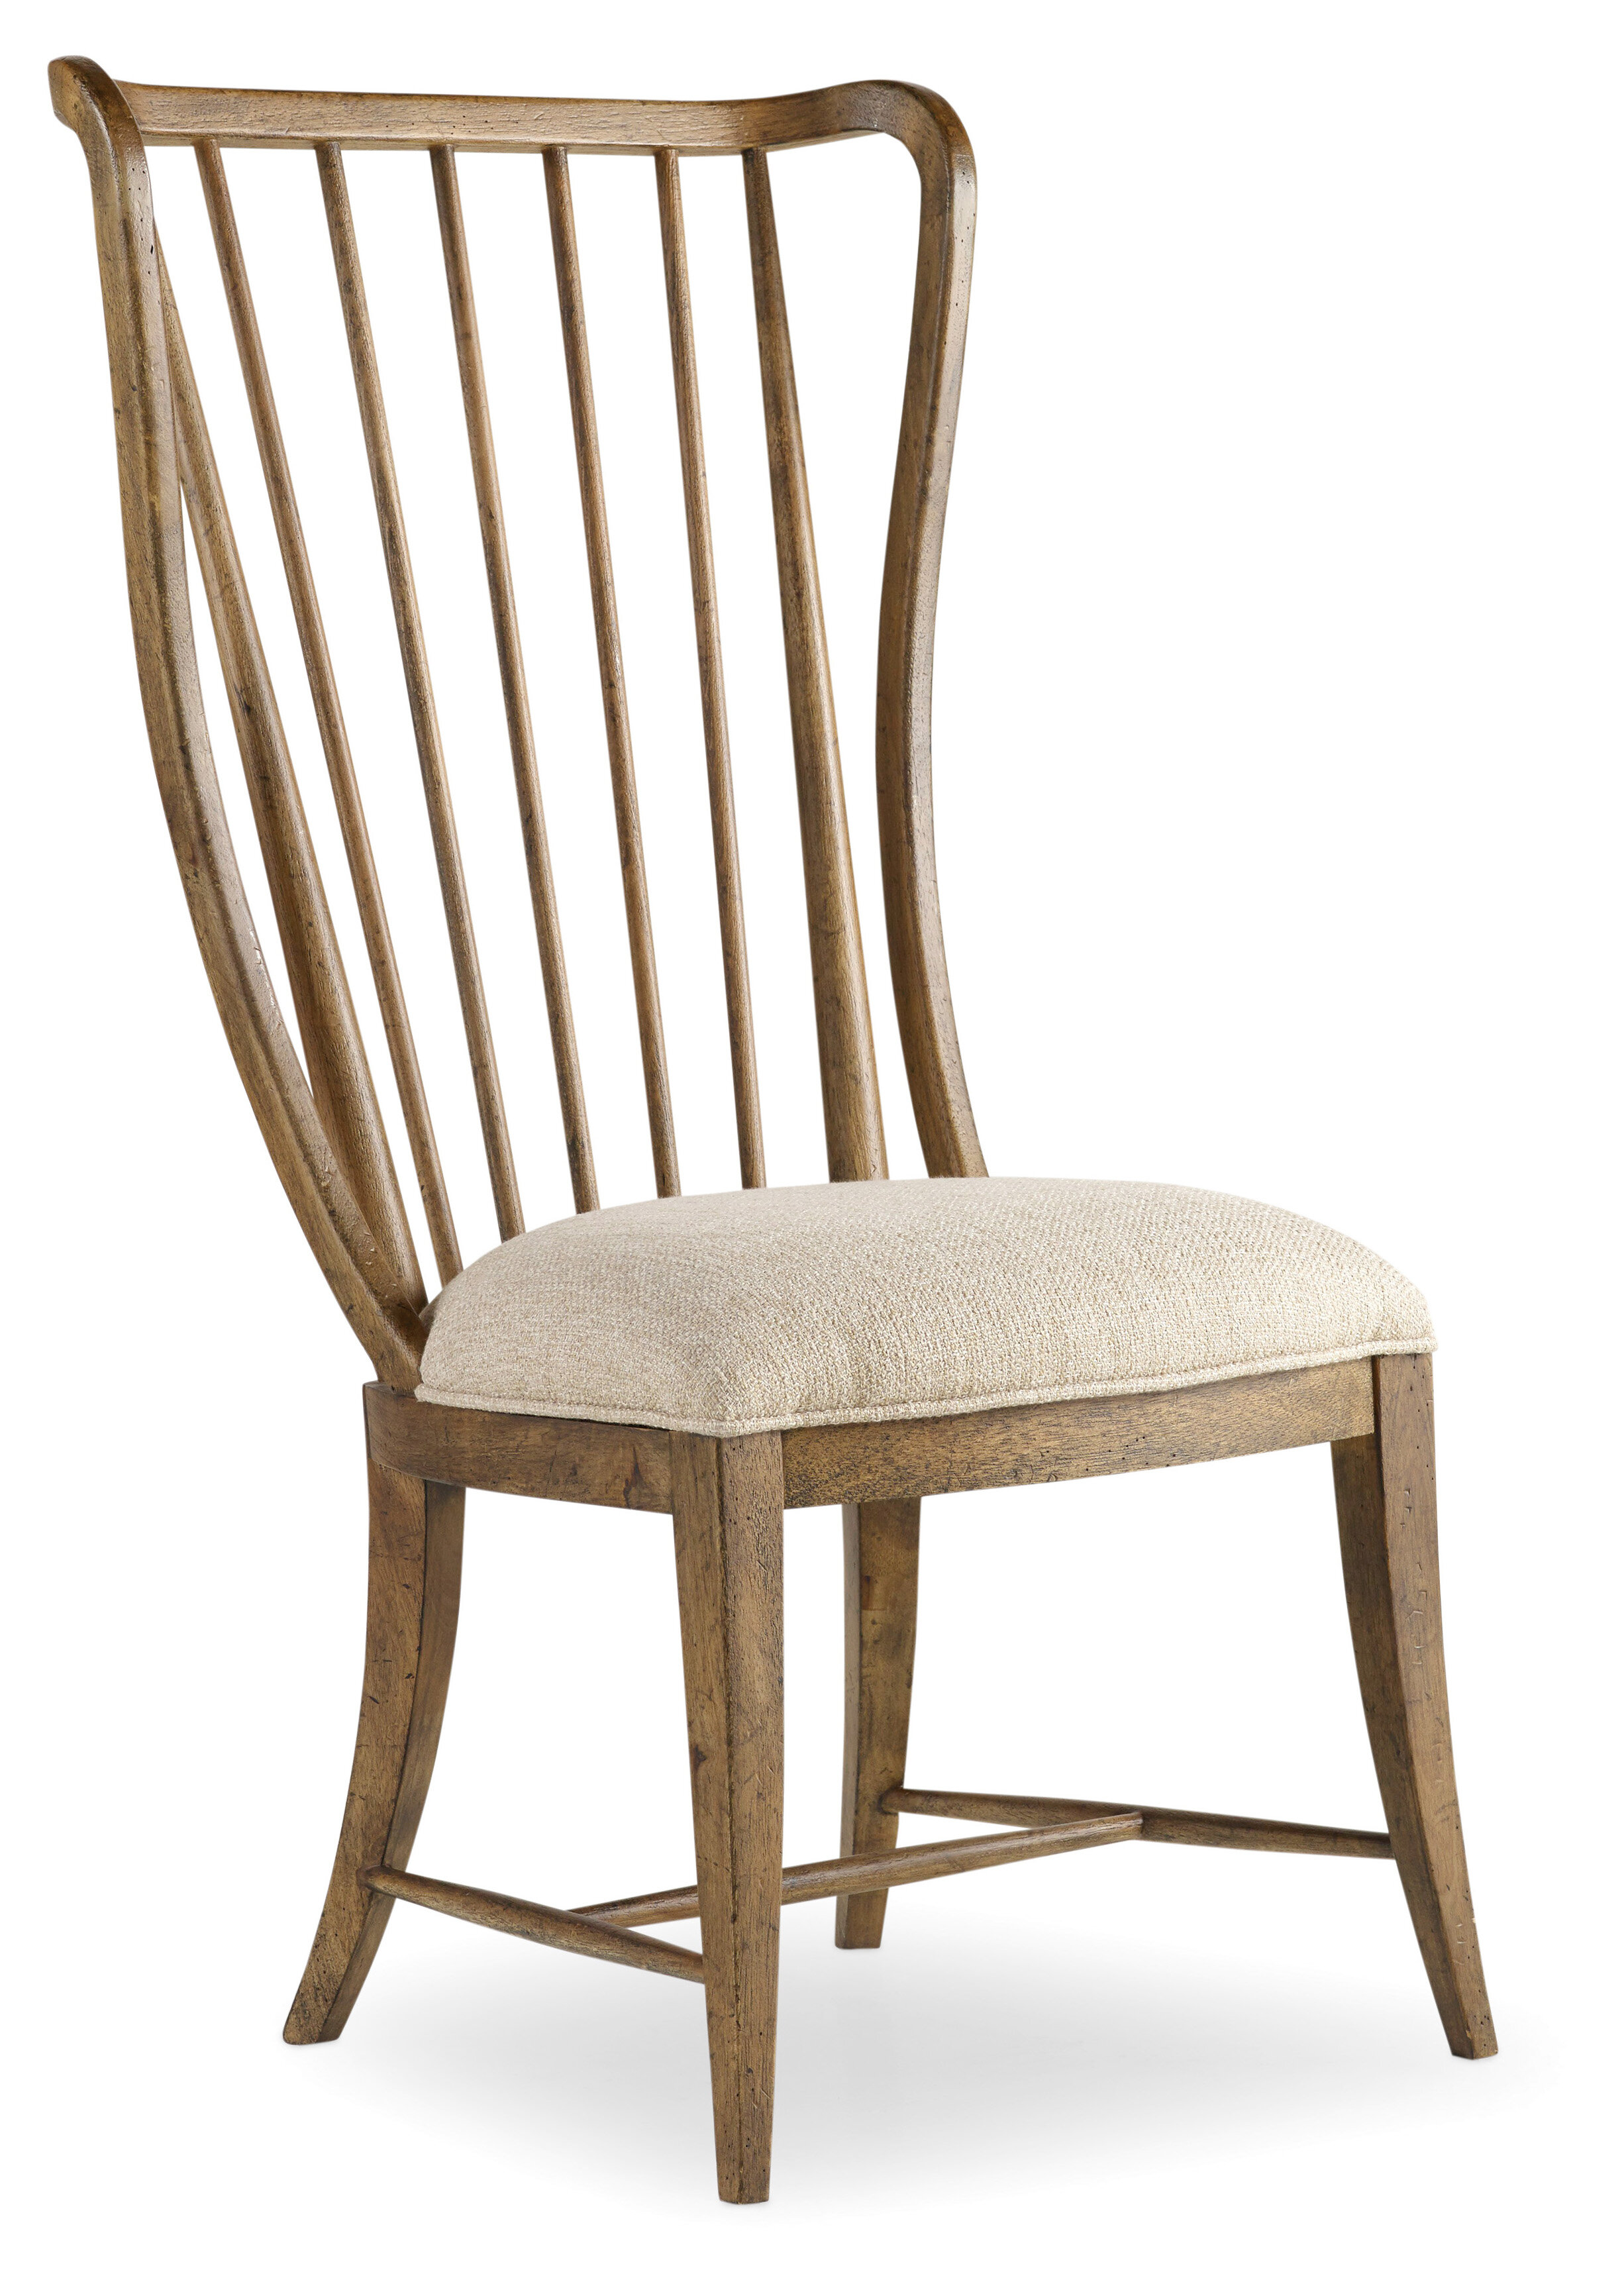 b6da1d21bed17 Sanctuary Solid Wood Dining Chair